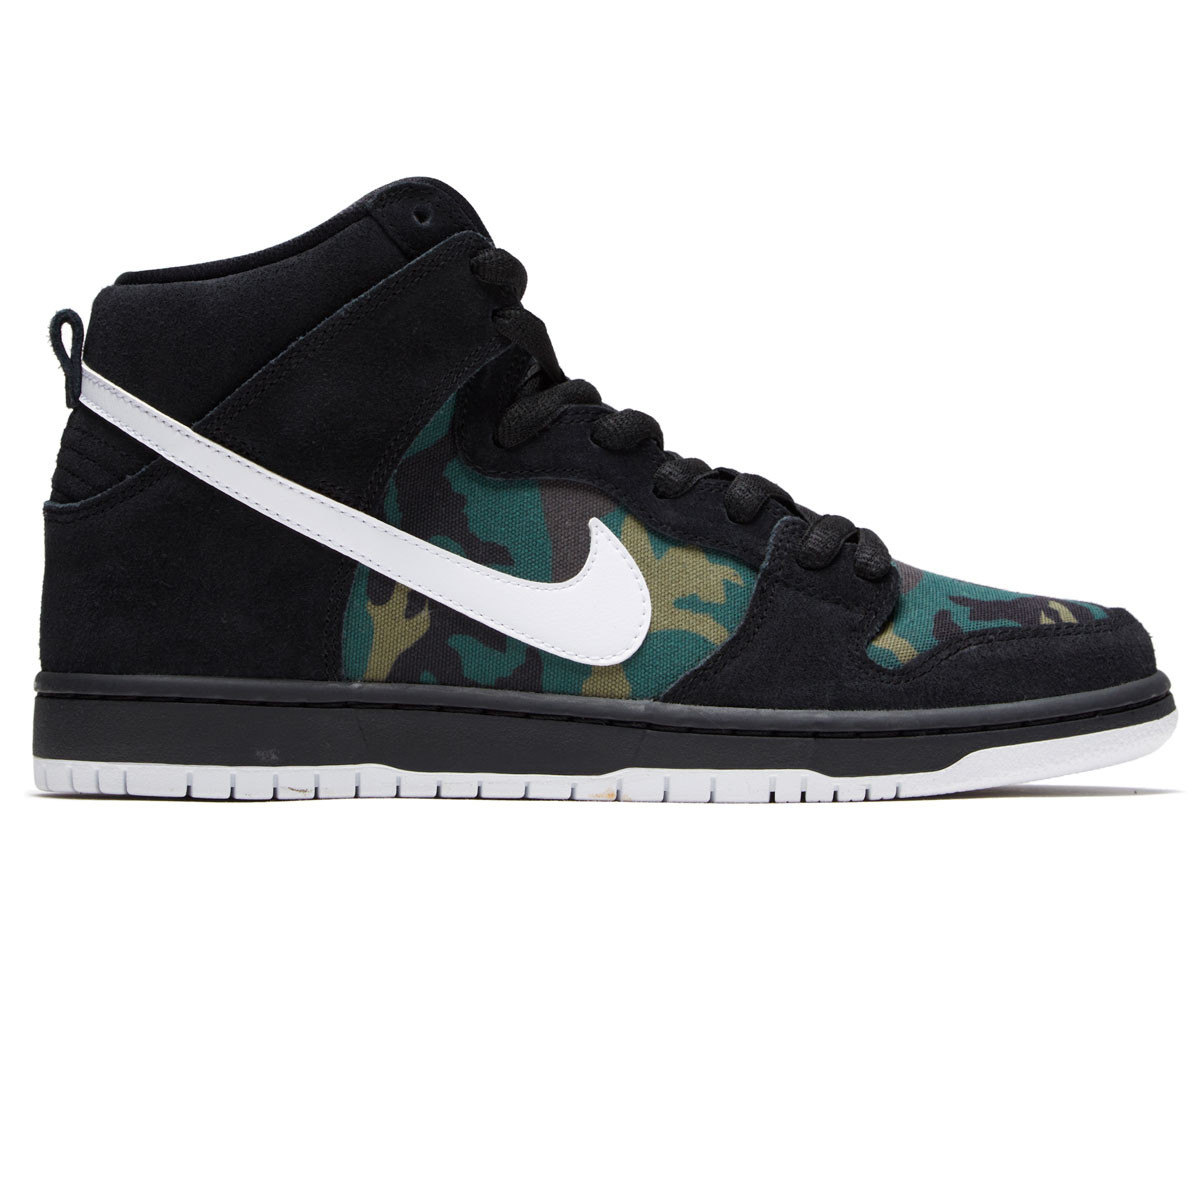 promo code 7848a 98825 Nike SB Dunk High Pro Shoes - Black White Iguana Baroque Brown -